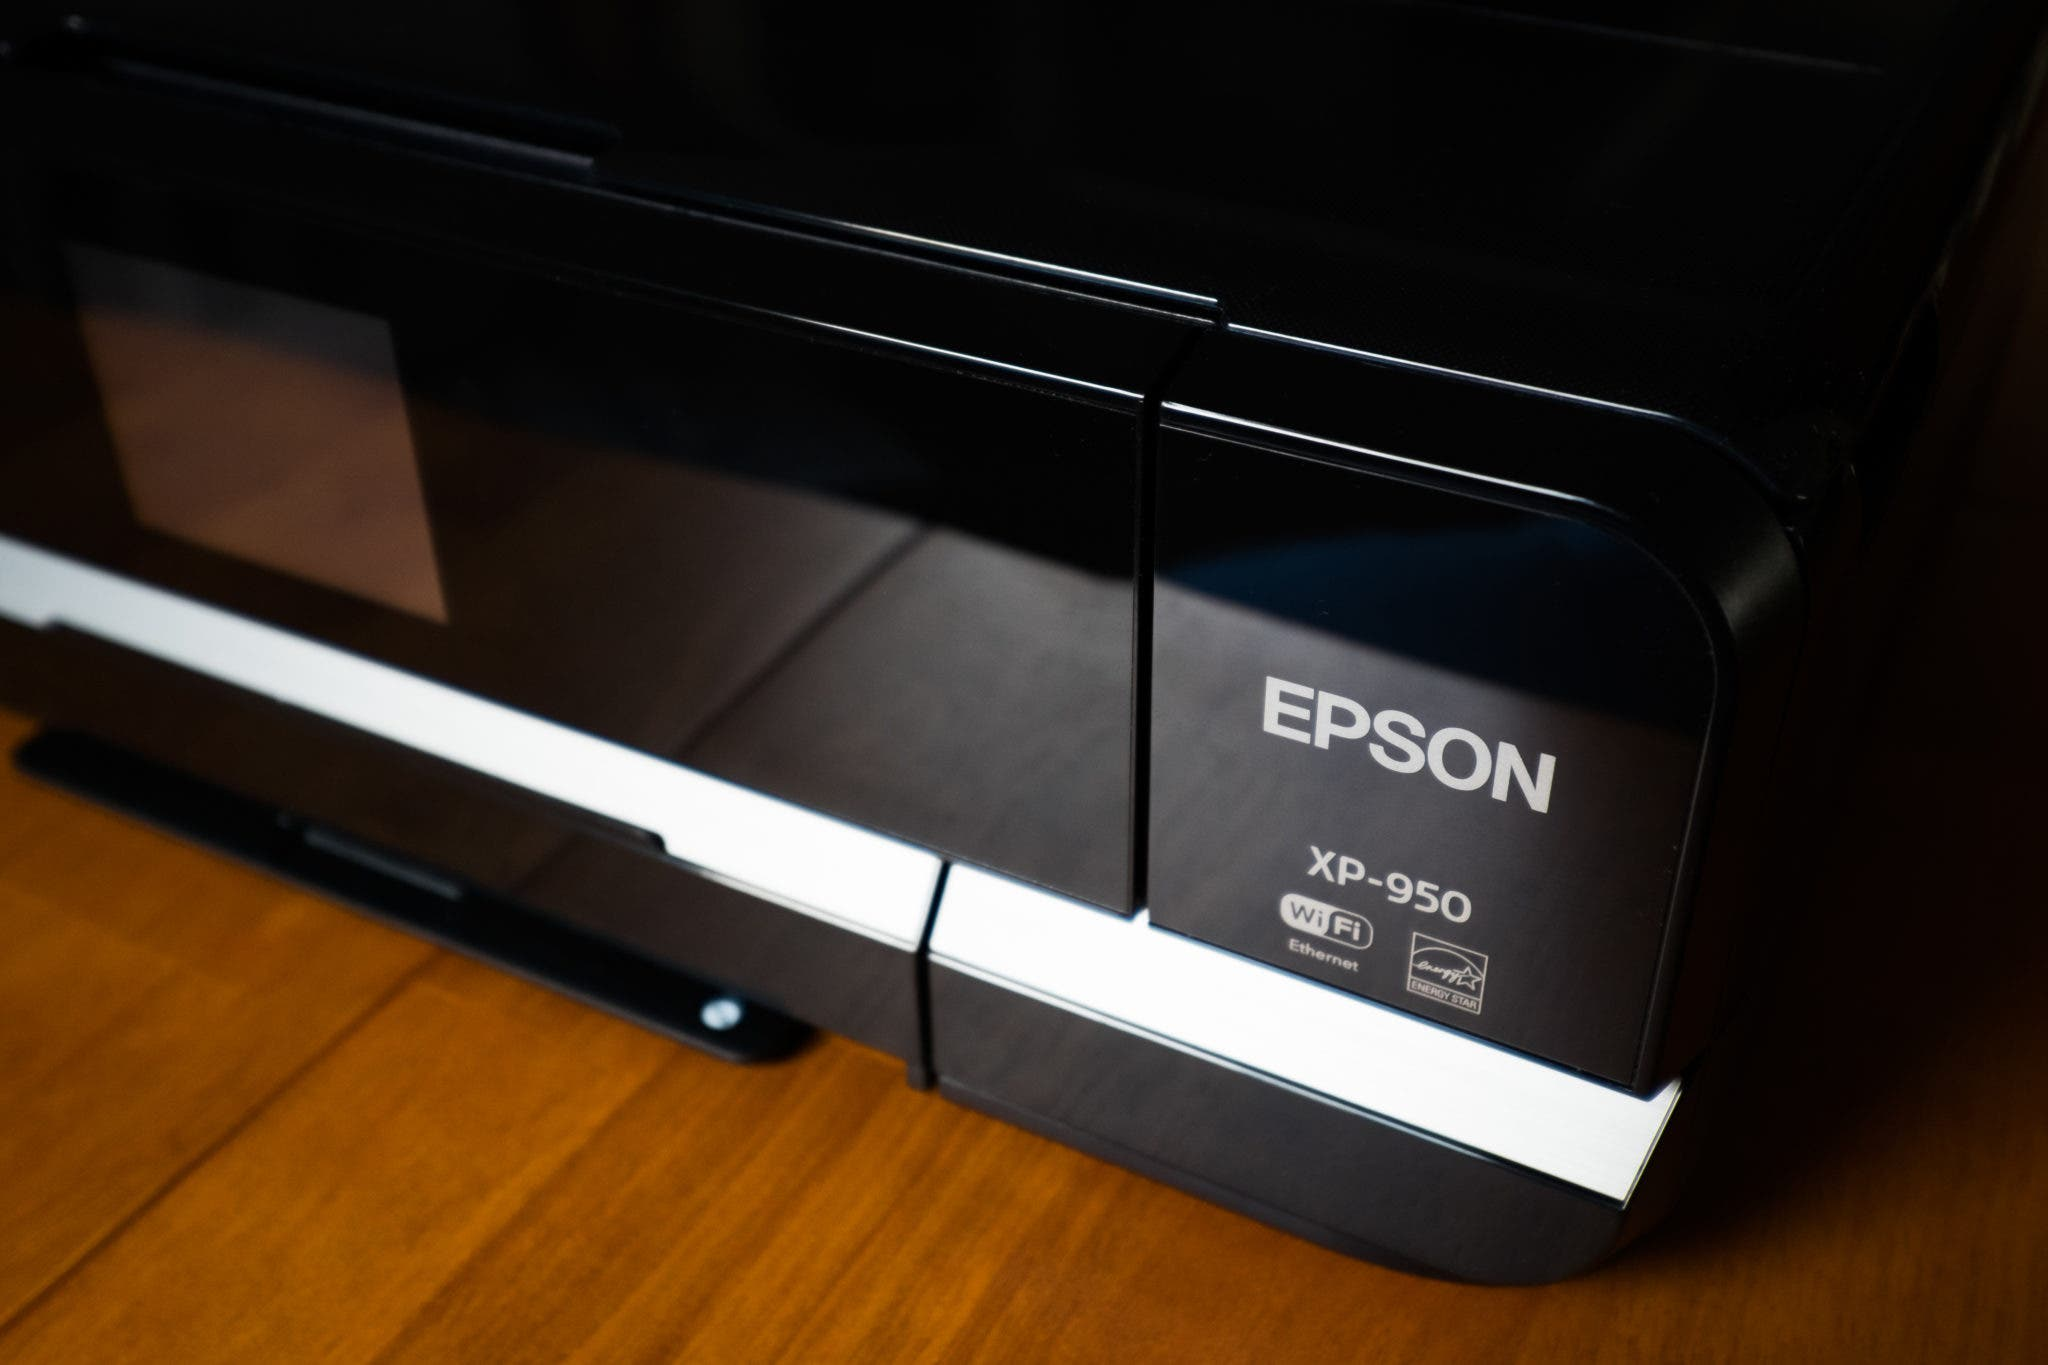 Review: Epson XP-950